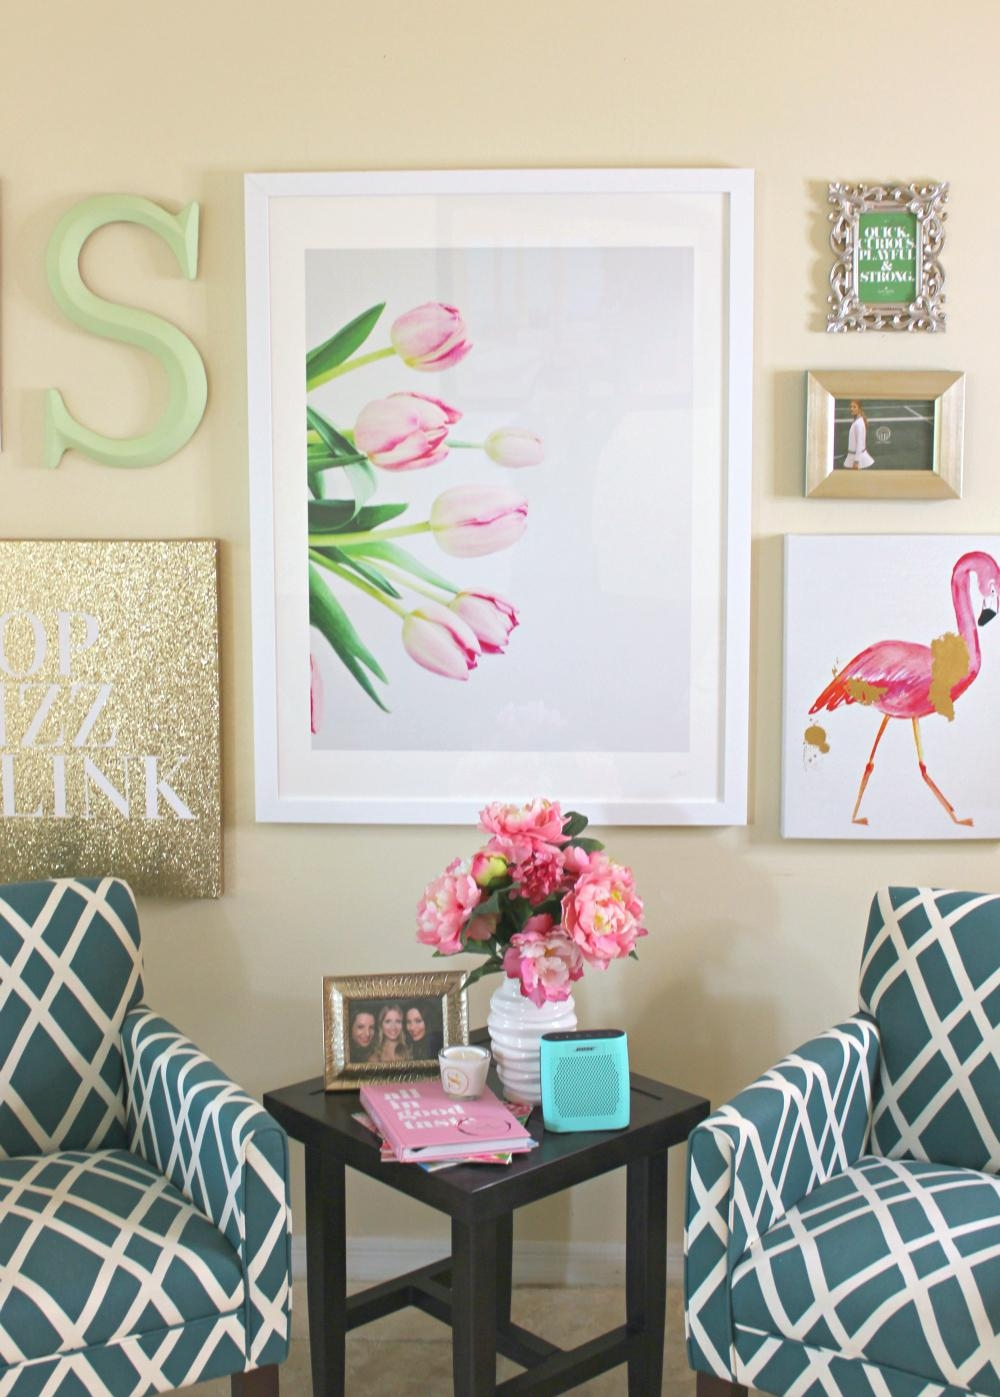 Lilly Pulitzer Inspired Wall Art Collage | Diary Of A Debutante Intended For Vibrant Wall Art (Image 11 of 20)